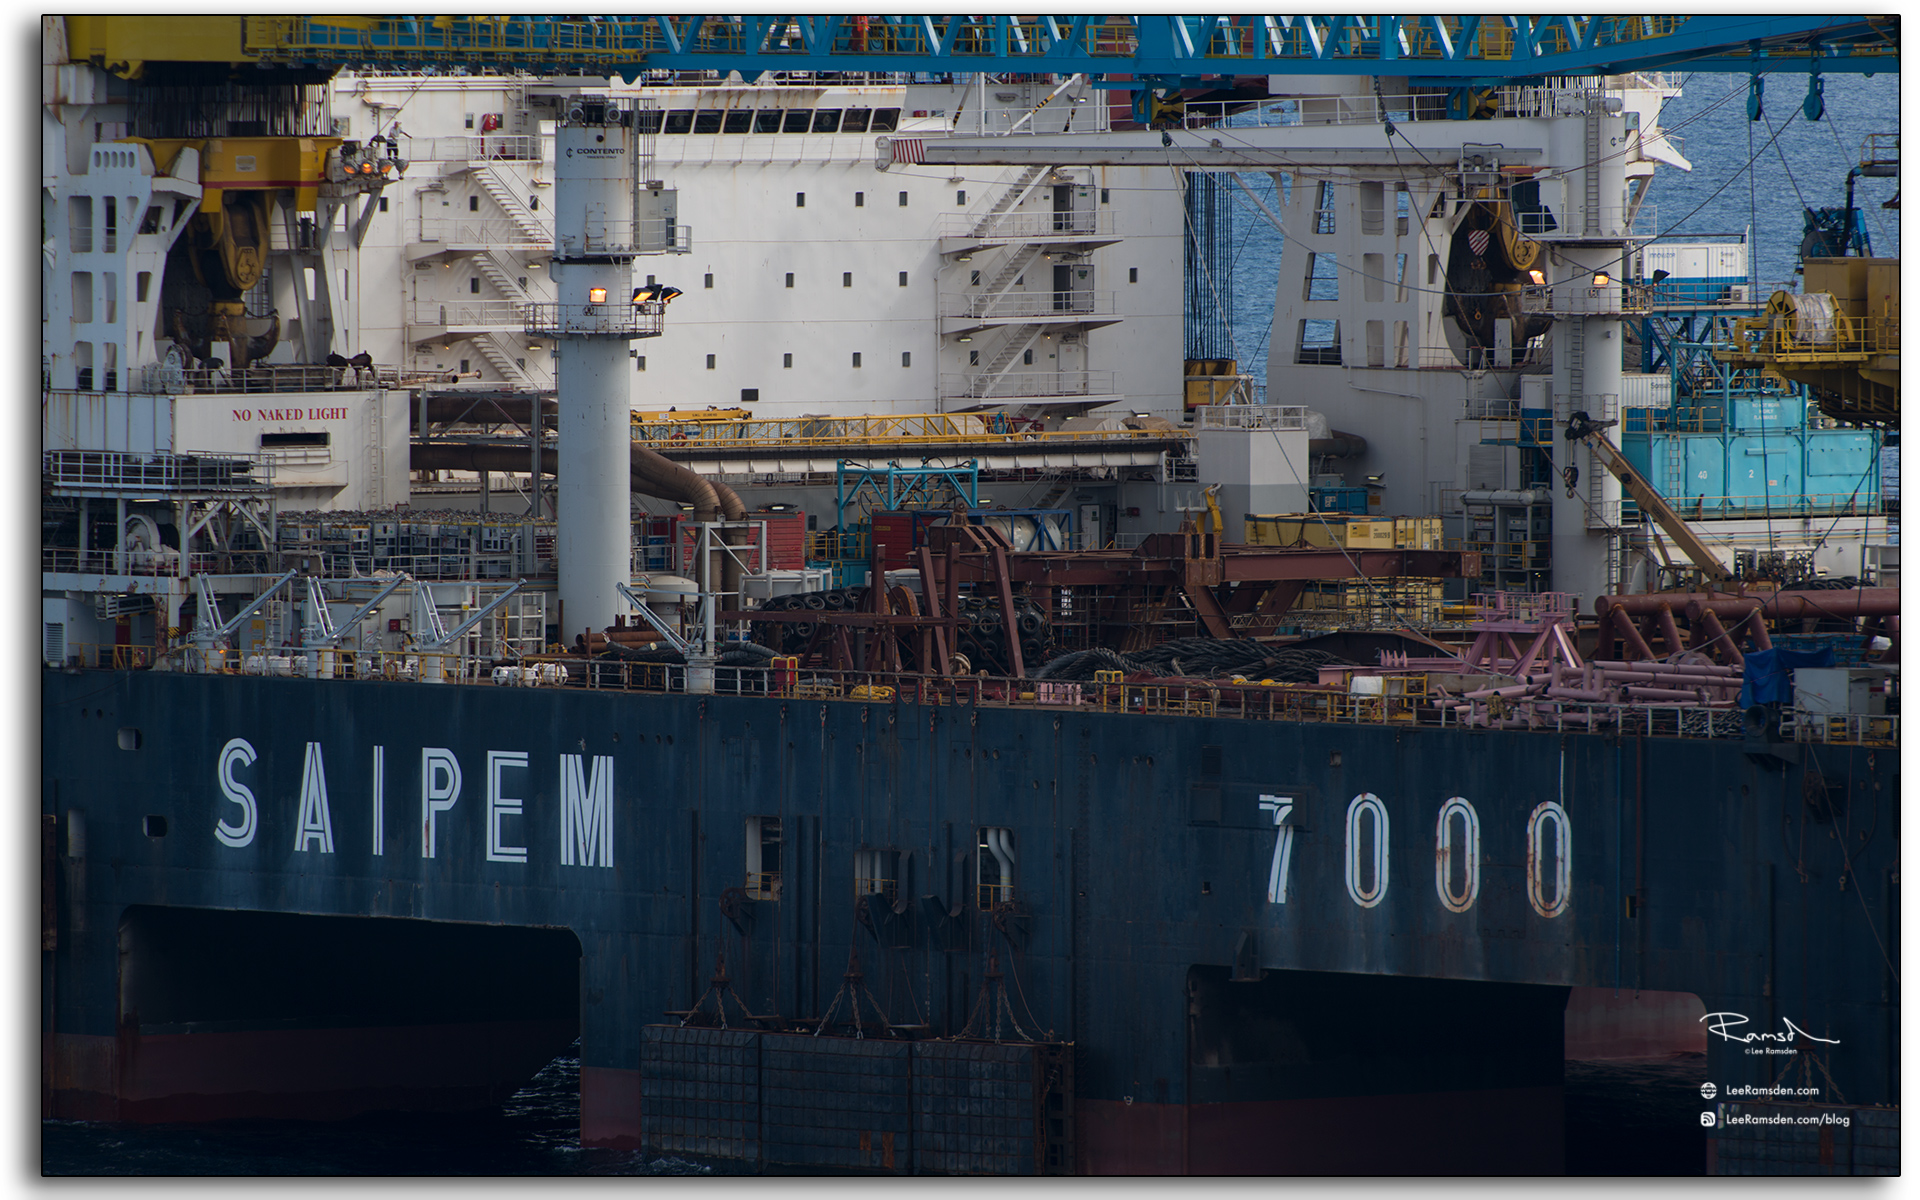 Saipem, S7000, heavy lifting, vessel